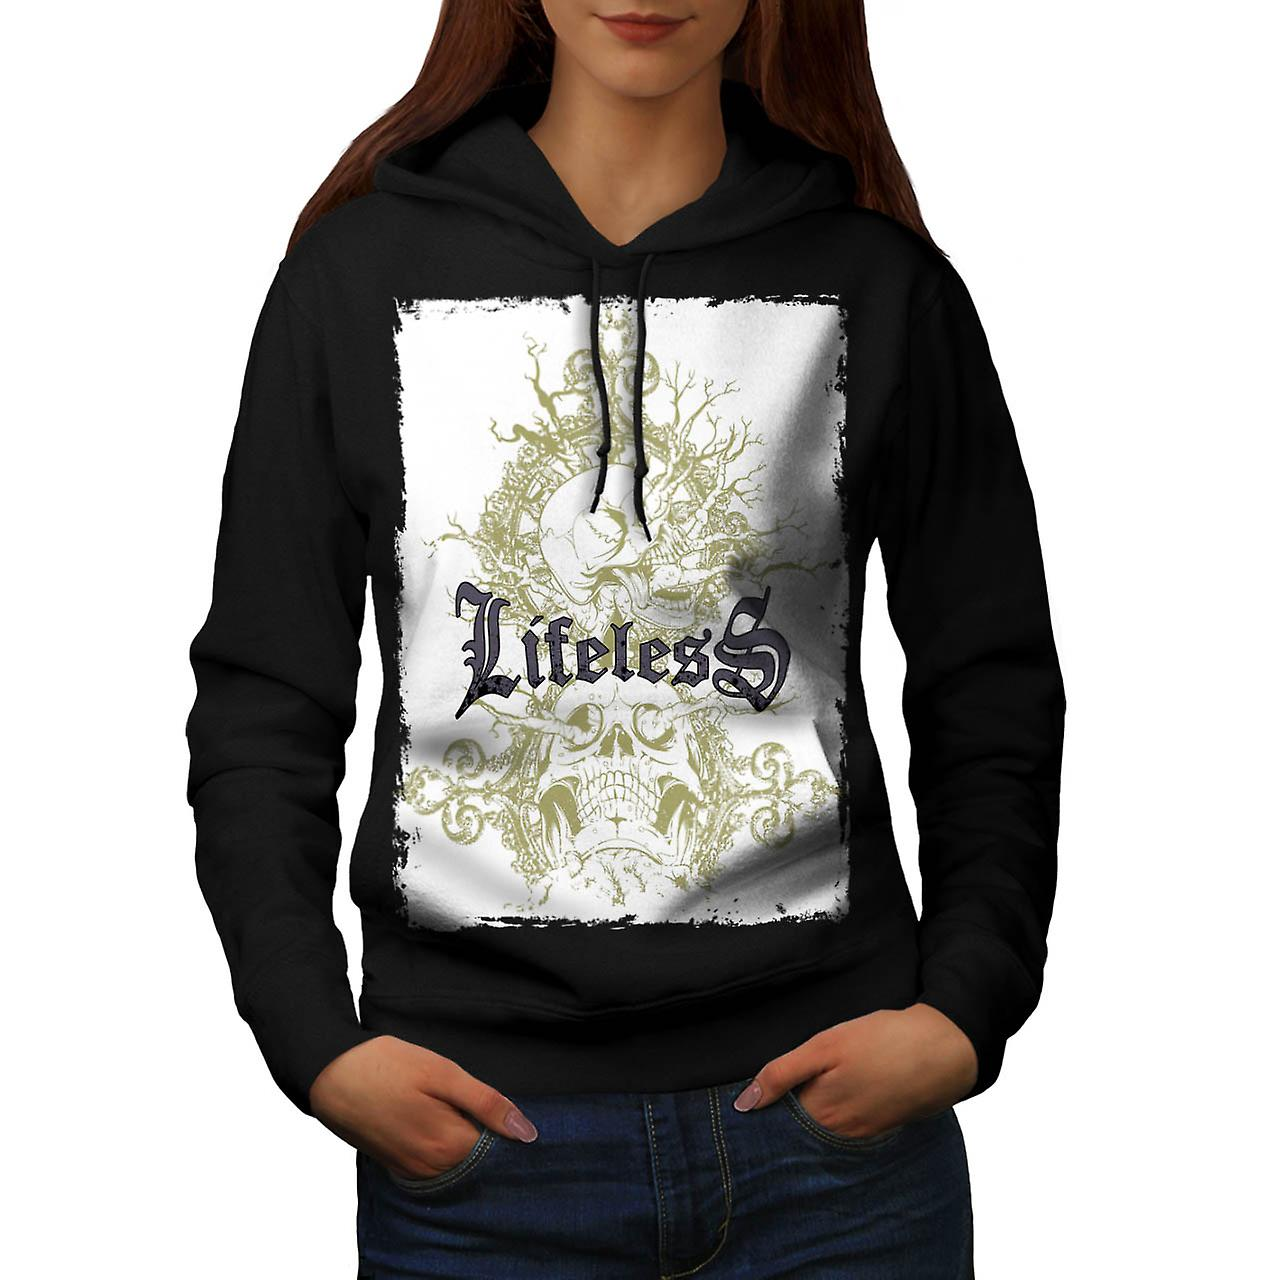 Lifeless Soul Skull Grave Yard Women Black Hoodie | Wellcoda